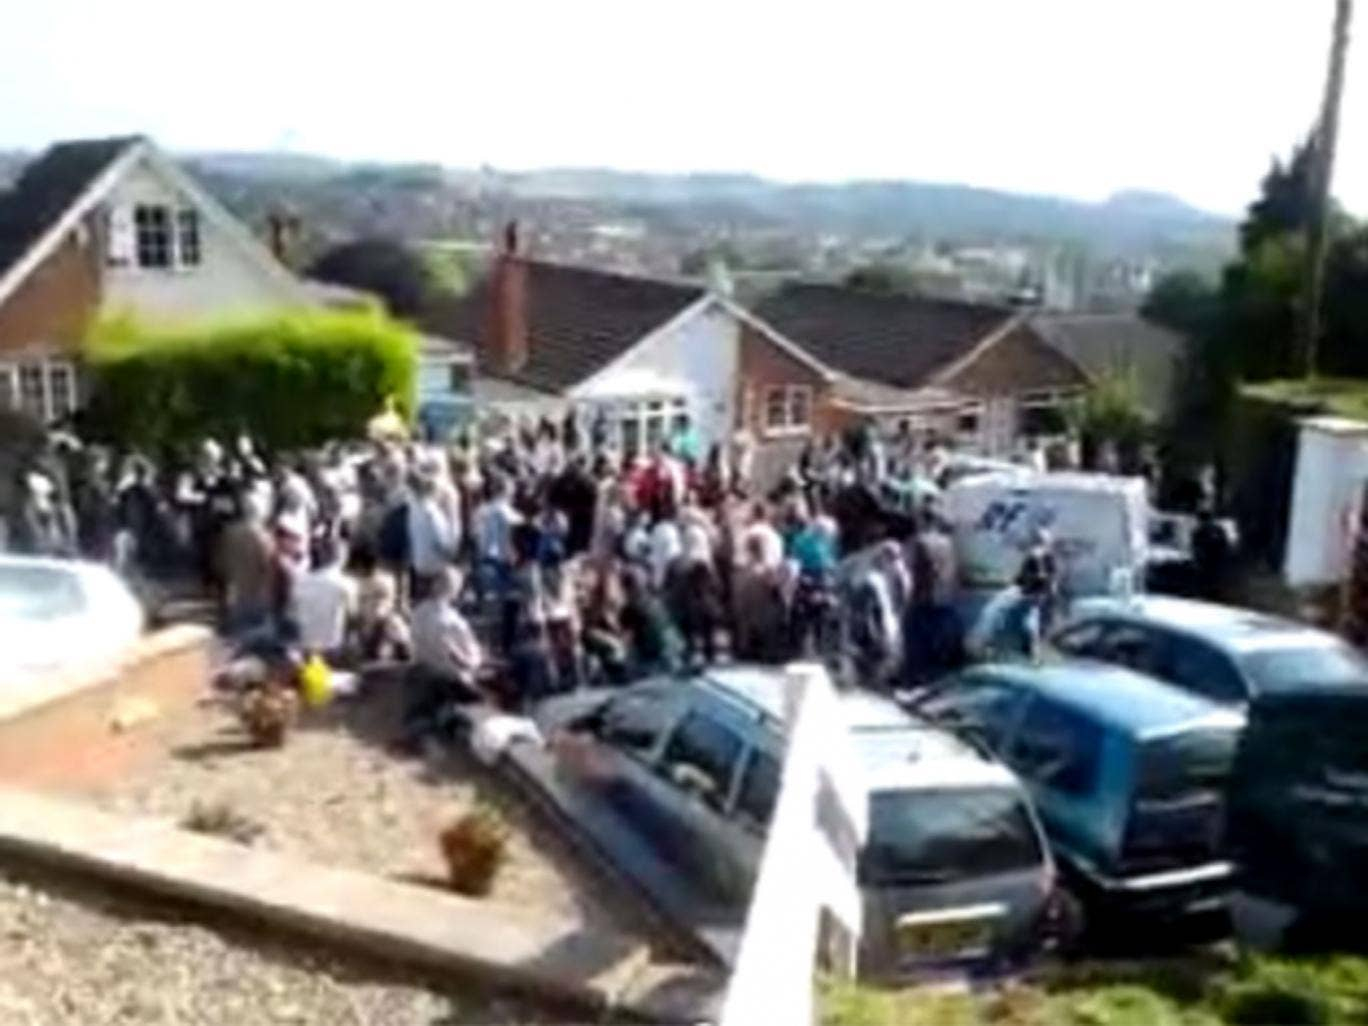 Hundreds gathered to form human barrier in front of Crawford's house